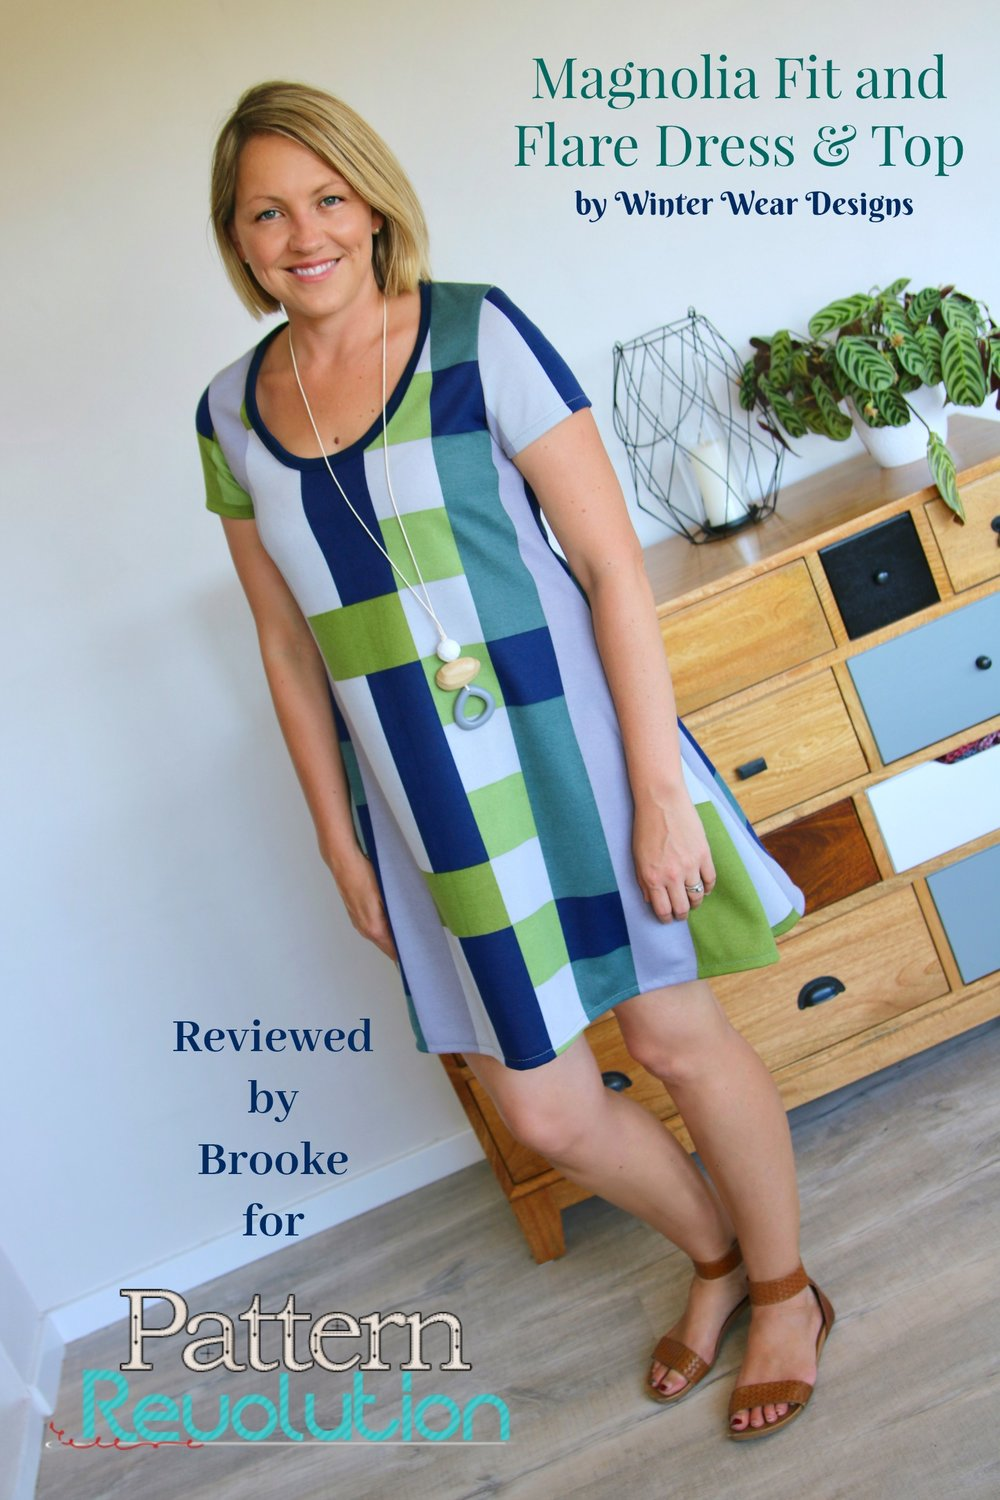 Brooke's Magnolia Dress by Winter Wear Designs